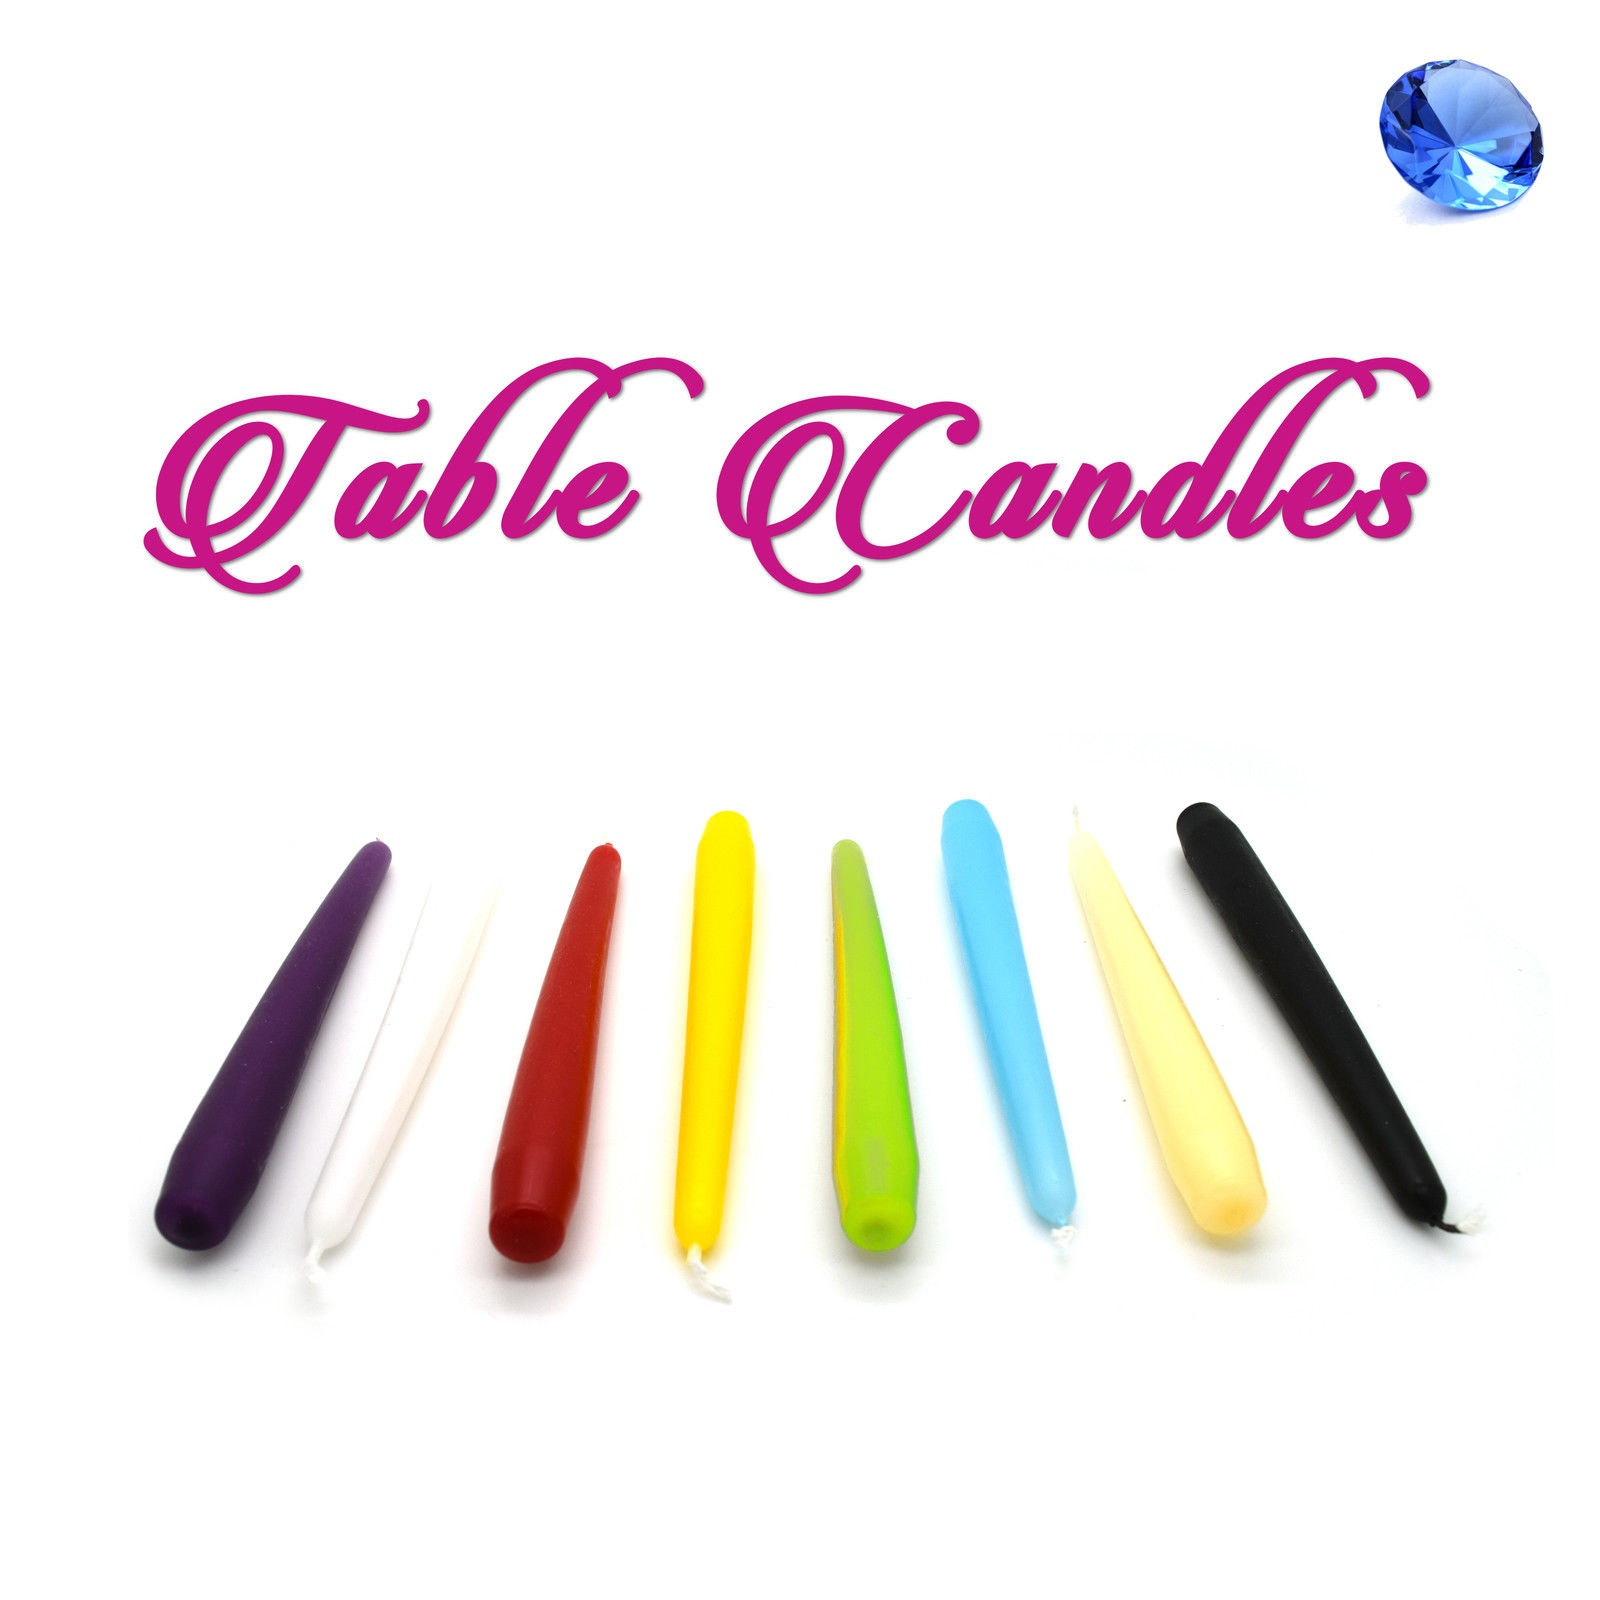 20cm-Table-Candles-Non-Drip-Tapered-End-For-Dinner-amp-Wedding-Table-Christmas-6-5